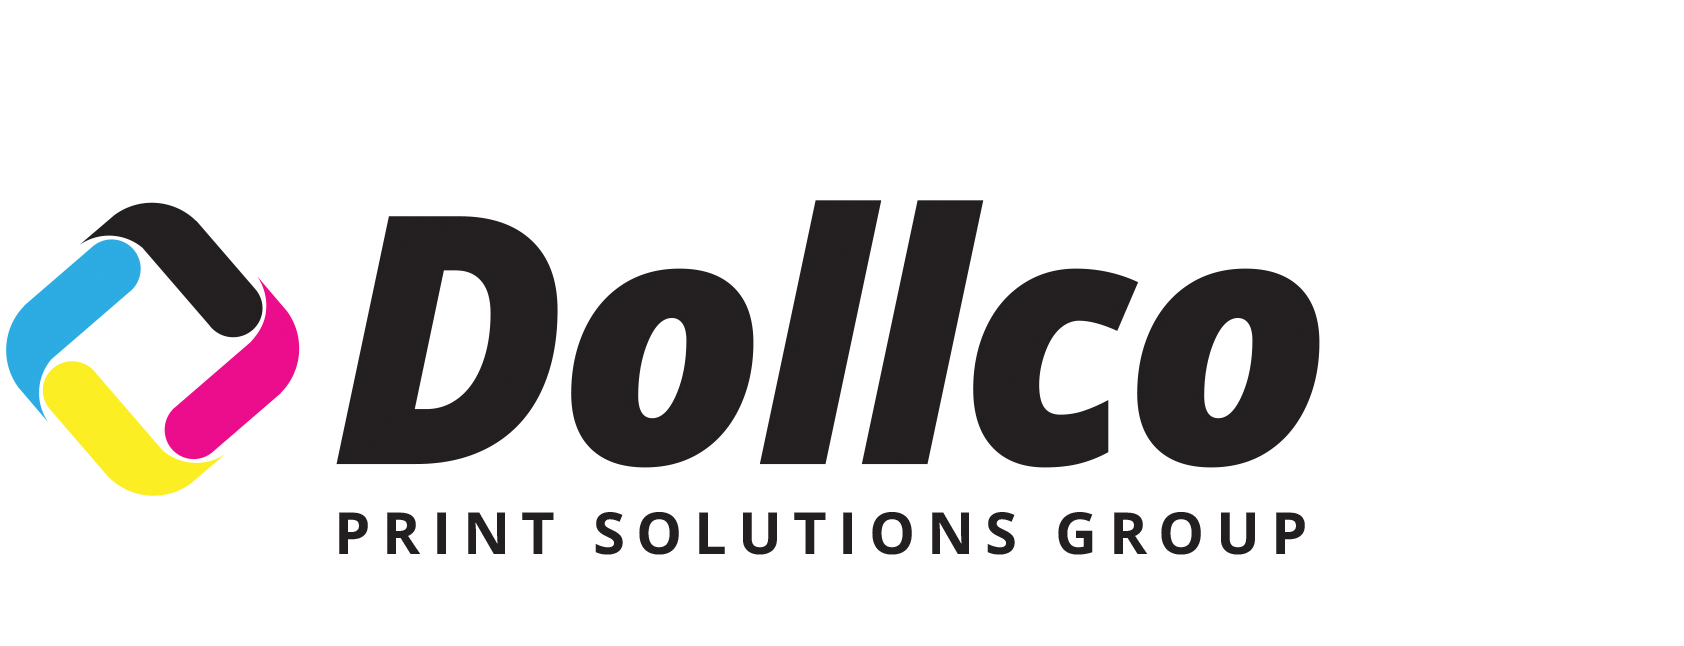 Dollco Print Solutions Group, Black Logo, Web Press Printing, Magazine Printing, Catalogue Printing, US, Canada